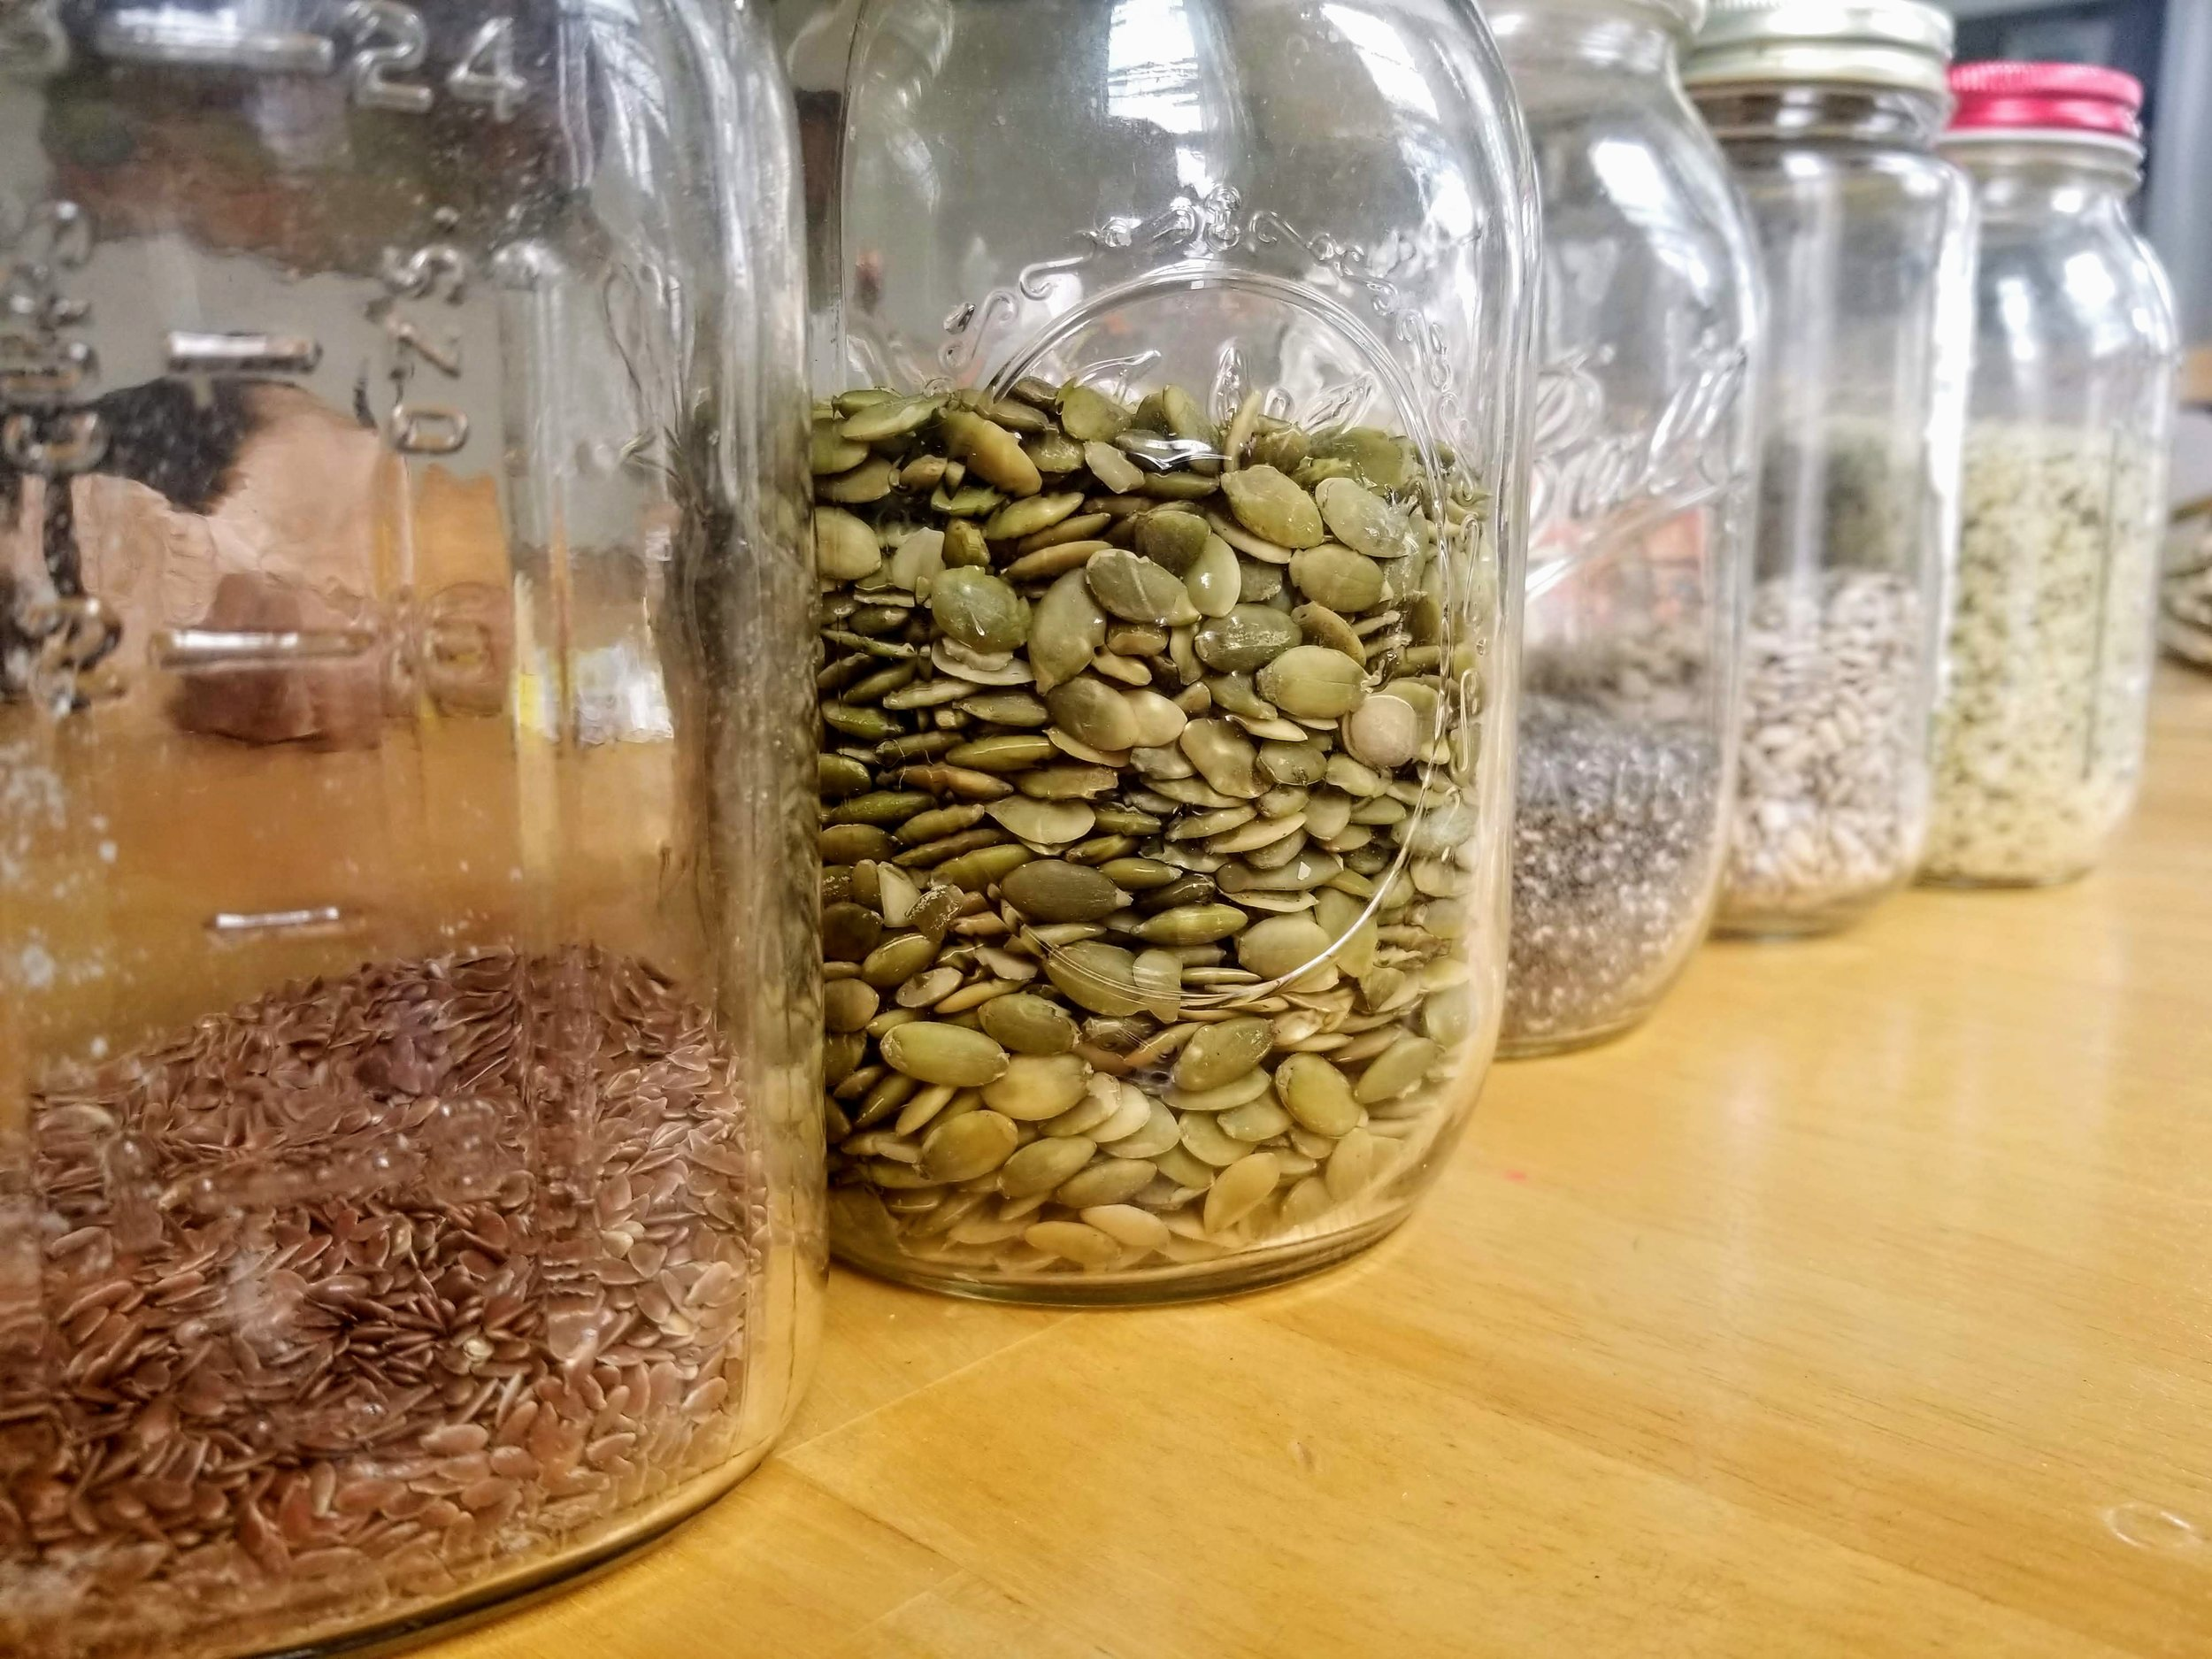 2. Seeds - Seeds are great sources of blood sugar balancing fiber, minerals, micronutrients, and hormone balancing omega 3 fats. Chia seeds for example, are a great source of iron, fiber, and omega 3 fatty acids. Pumpkin seeds contain compounds that balance gut bacteria and prevent the overgrowth of yeast and pathogenic bacteria. Flax seeds are a good source of omega three fatty acids and selenium, which promote hormone balance.For a seed that is rich in iron and has a calming effect, incorporate poppy seeds. My favorite recipe with poppy seeds is Magdalena Wselaki's Polish Poppy Seed cake (you can find the recipe here )